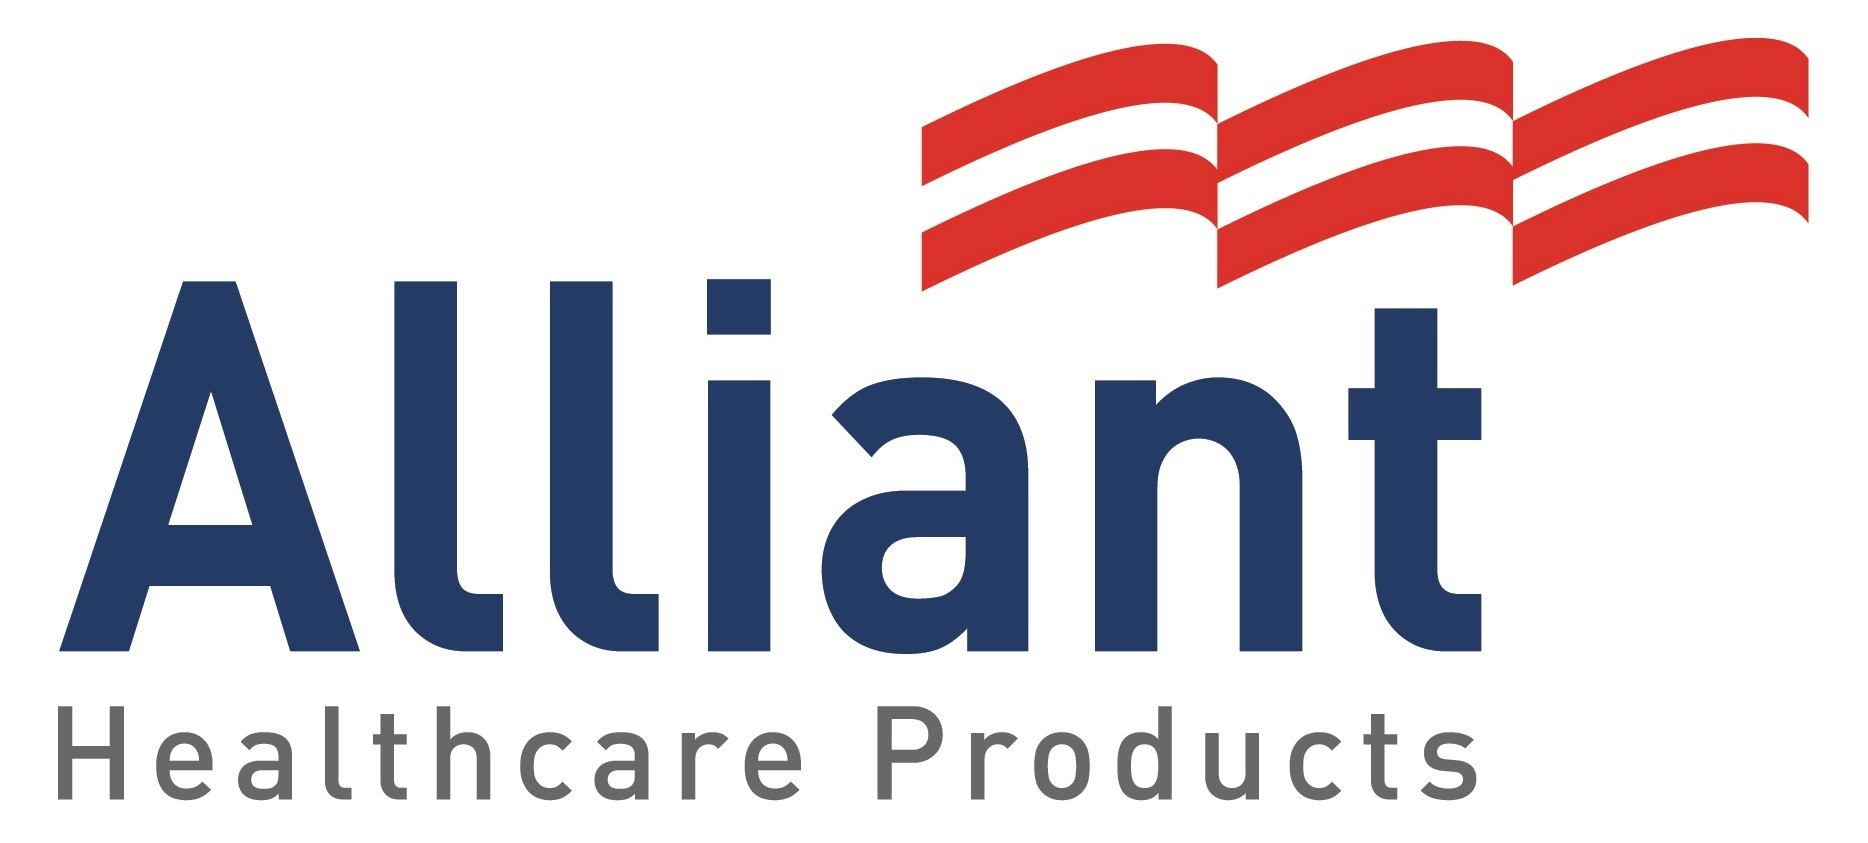 alliant health system Alliant has been a leader in the healthcare industry in the implementation of total quality managementafter five years, however, they do not have much to show for their efforts, with the exception of the foundation quality of relationships and processes.